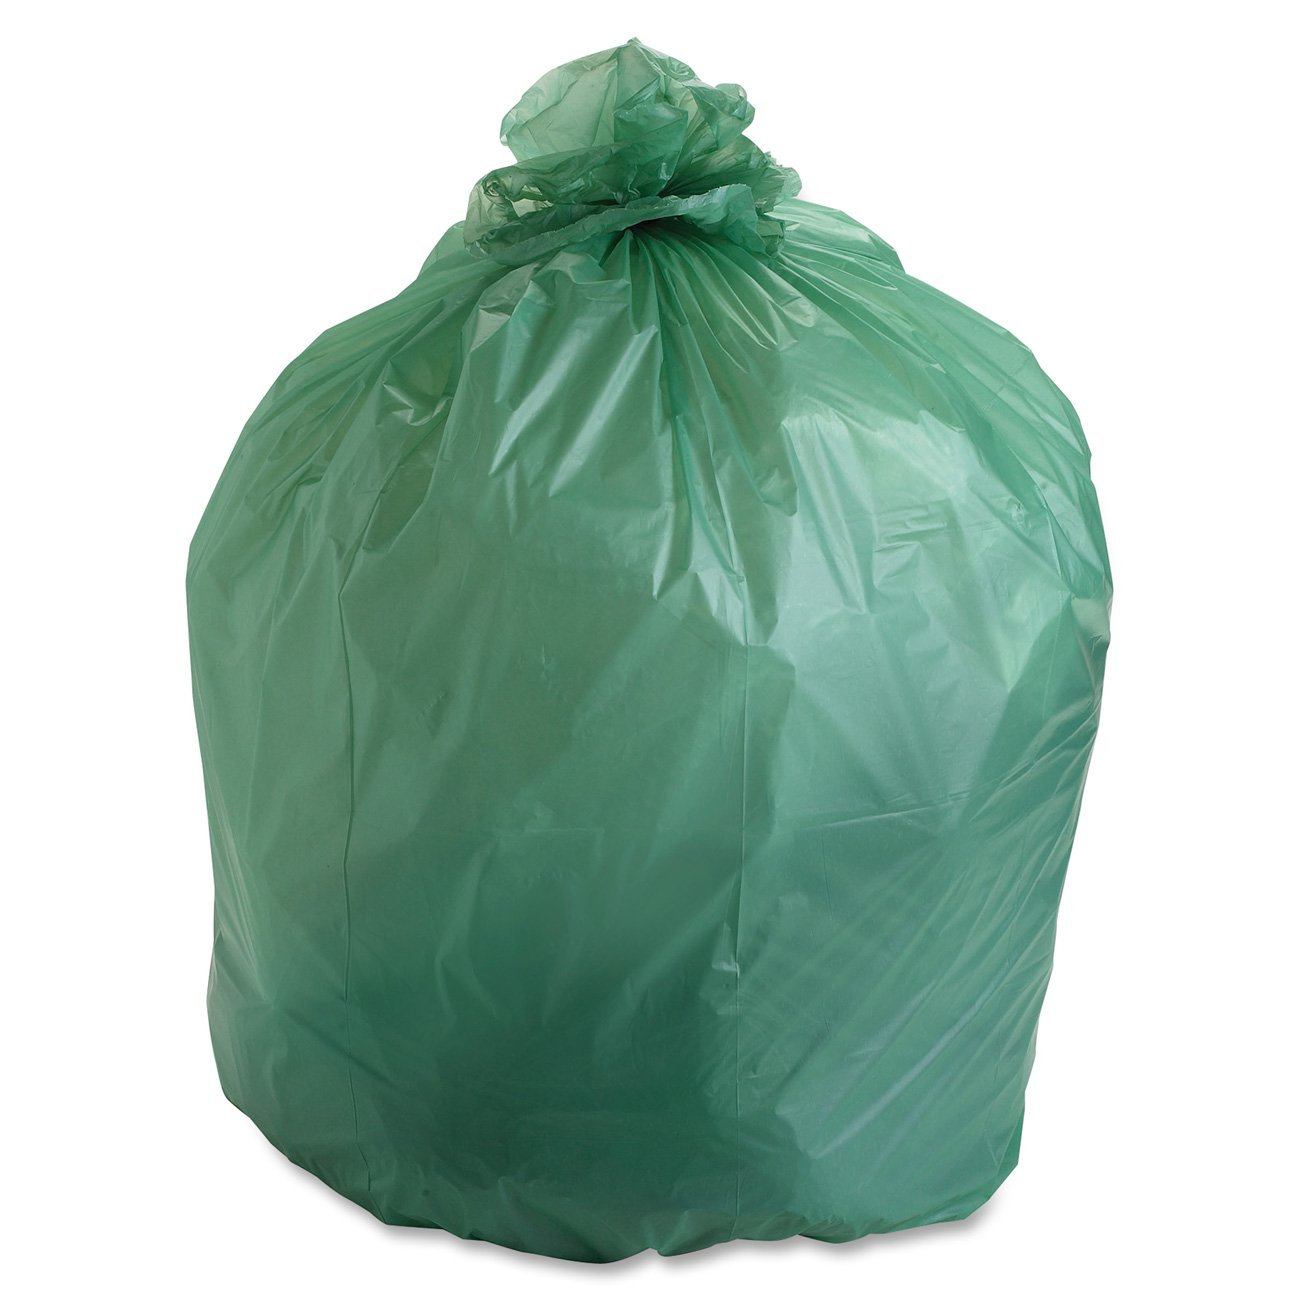 STOUT by Envision STO-E4860E85 EcoSafe-6400 Compostable Bags, 48'' x 60'', 64 gal capacity, 0.85 mil thickness, Green (Pack of 30)